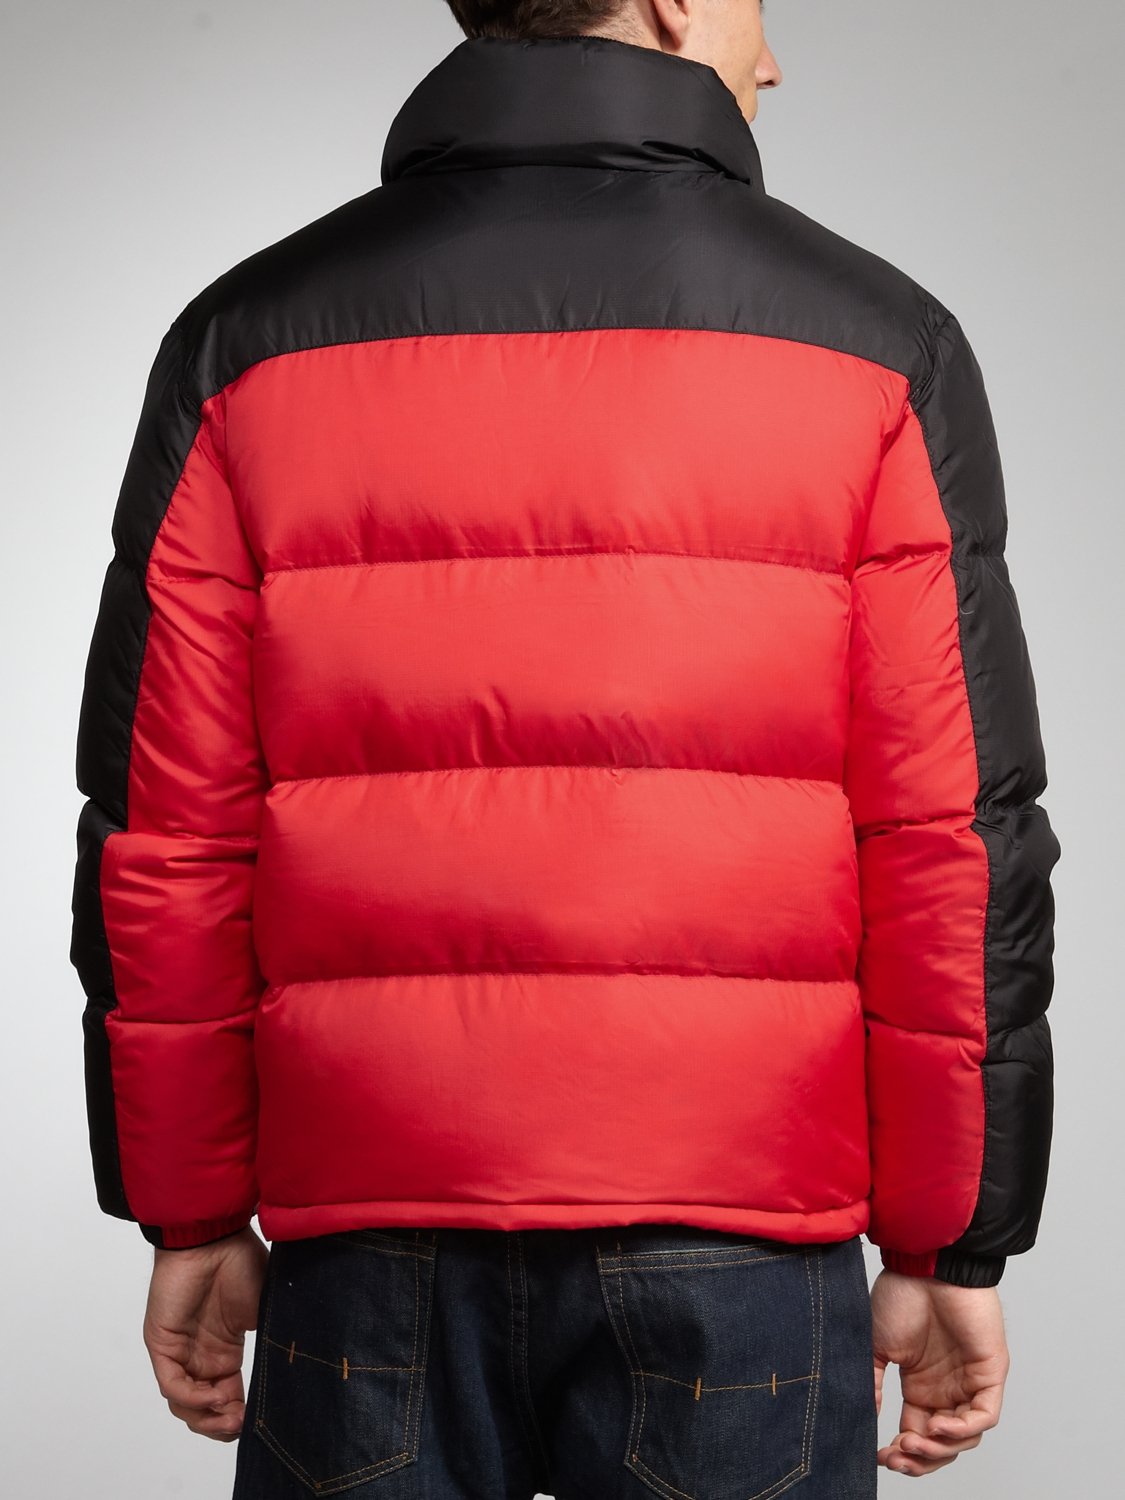 Polo Ralph Lauren Snow Puffer Jacket Red In Red For Men Lyst